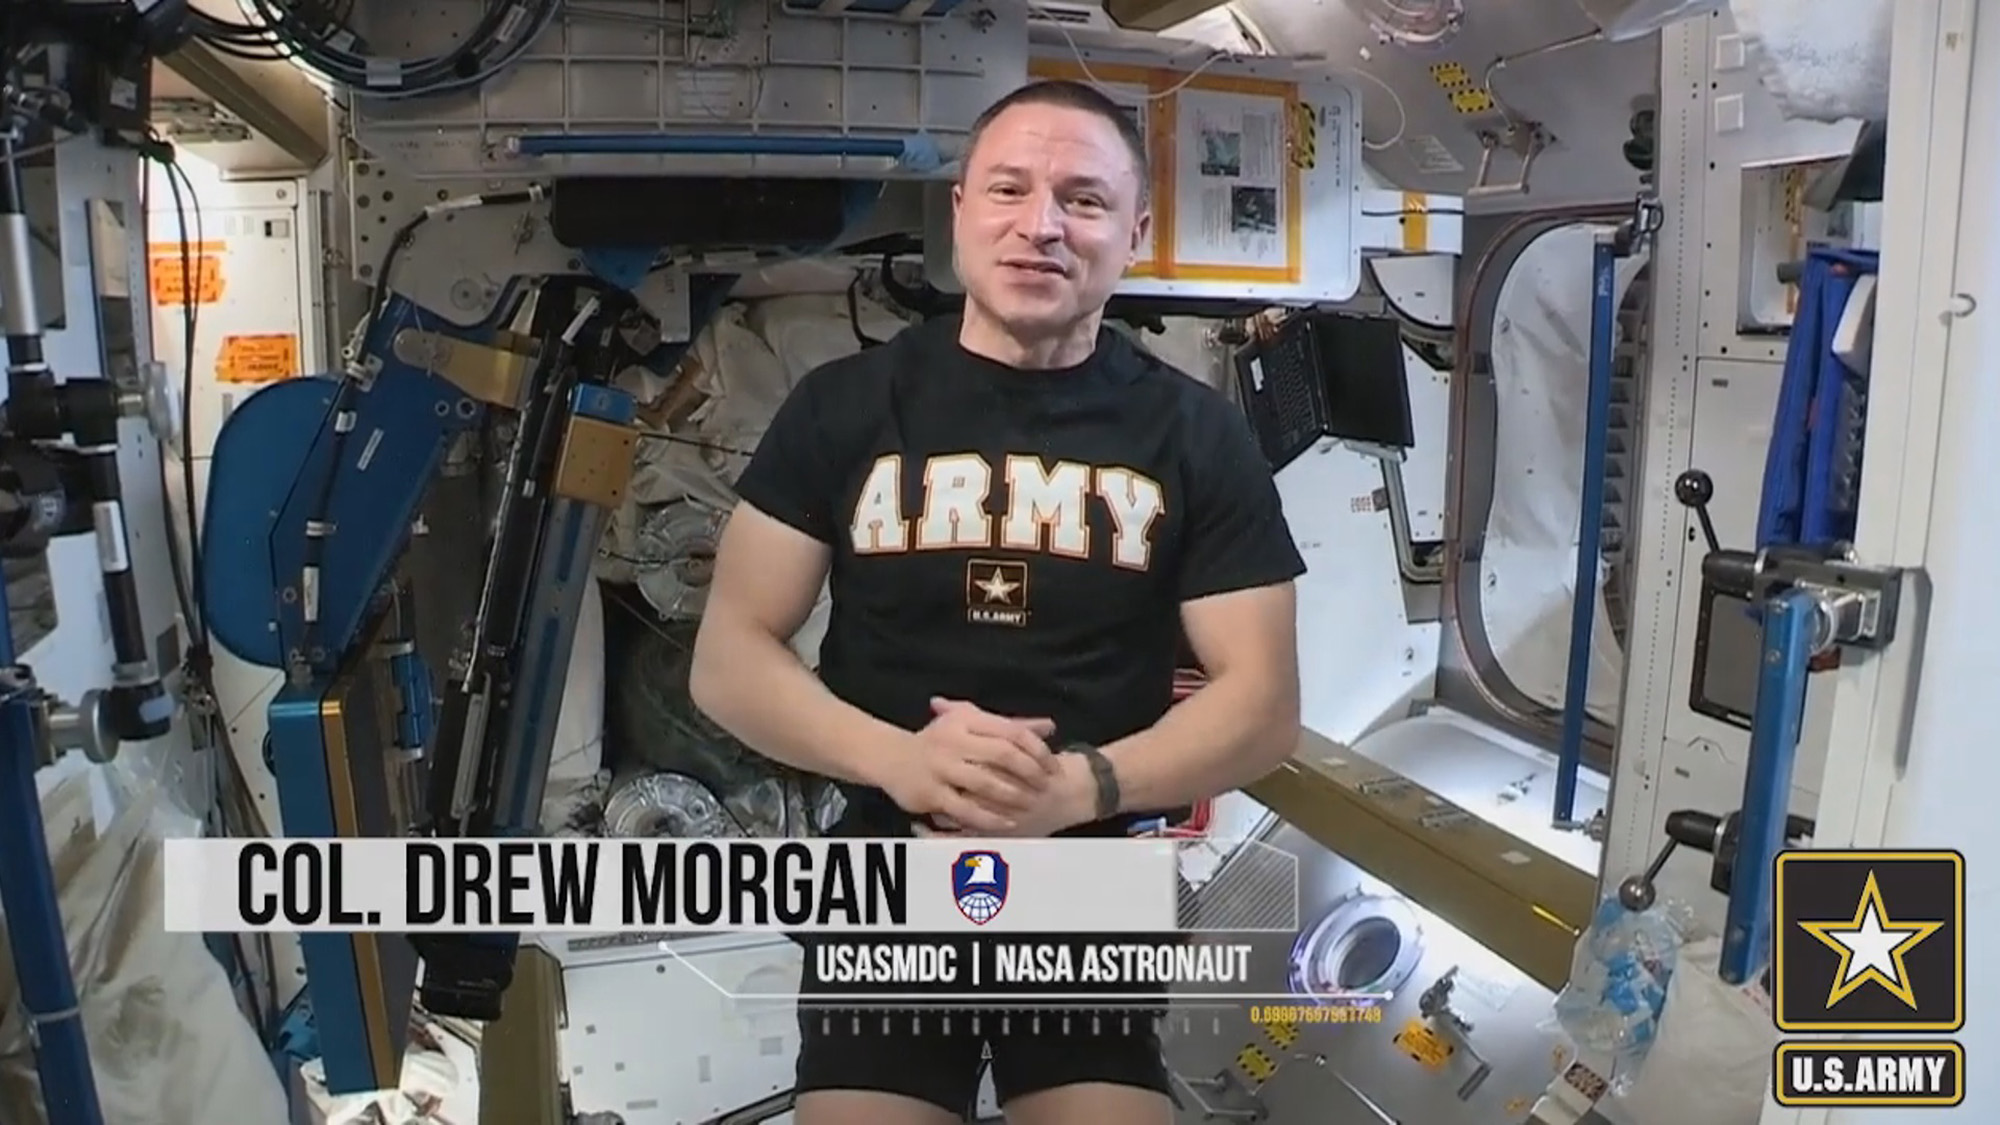 Weightless Workout: Army Astronaut Performs Combat Fitness Test In Space Station